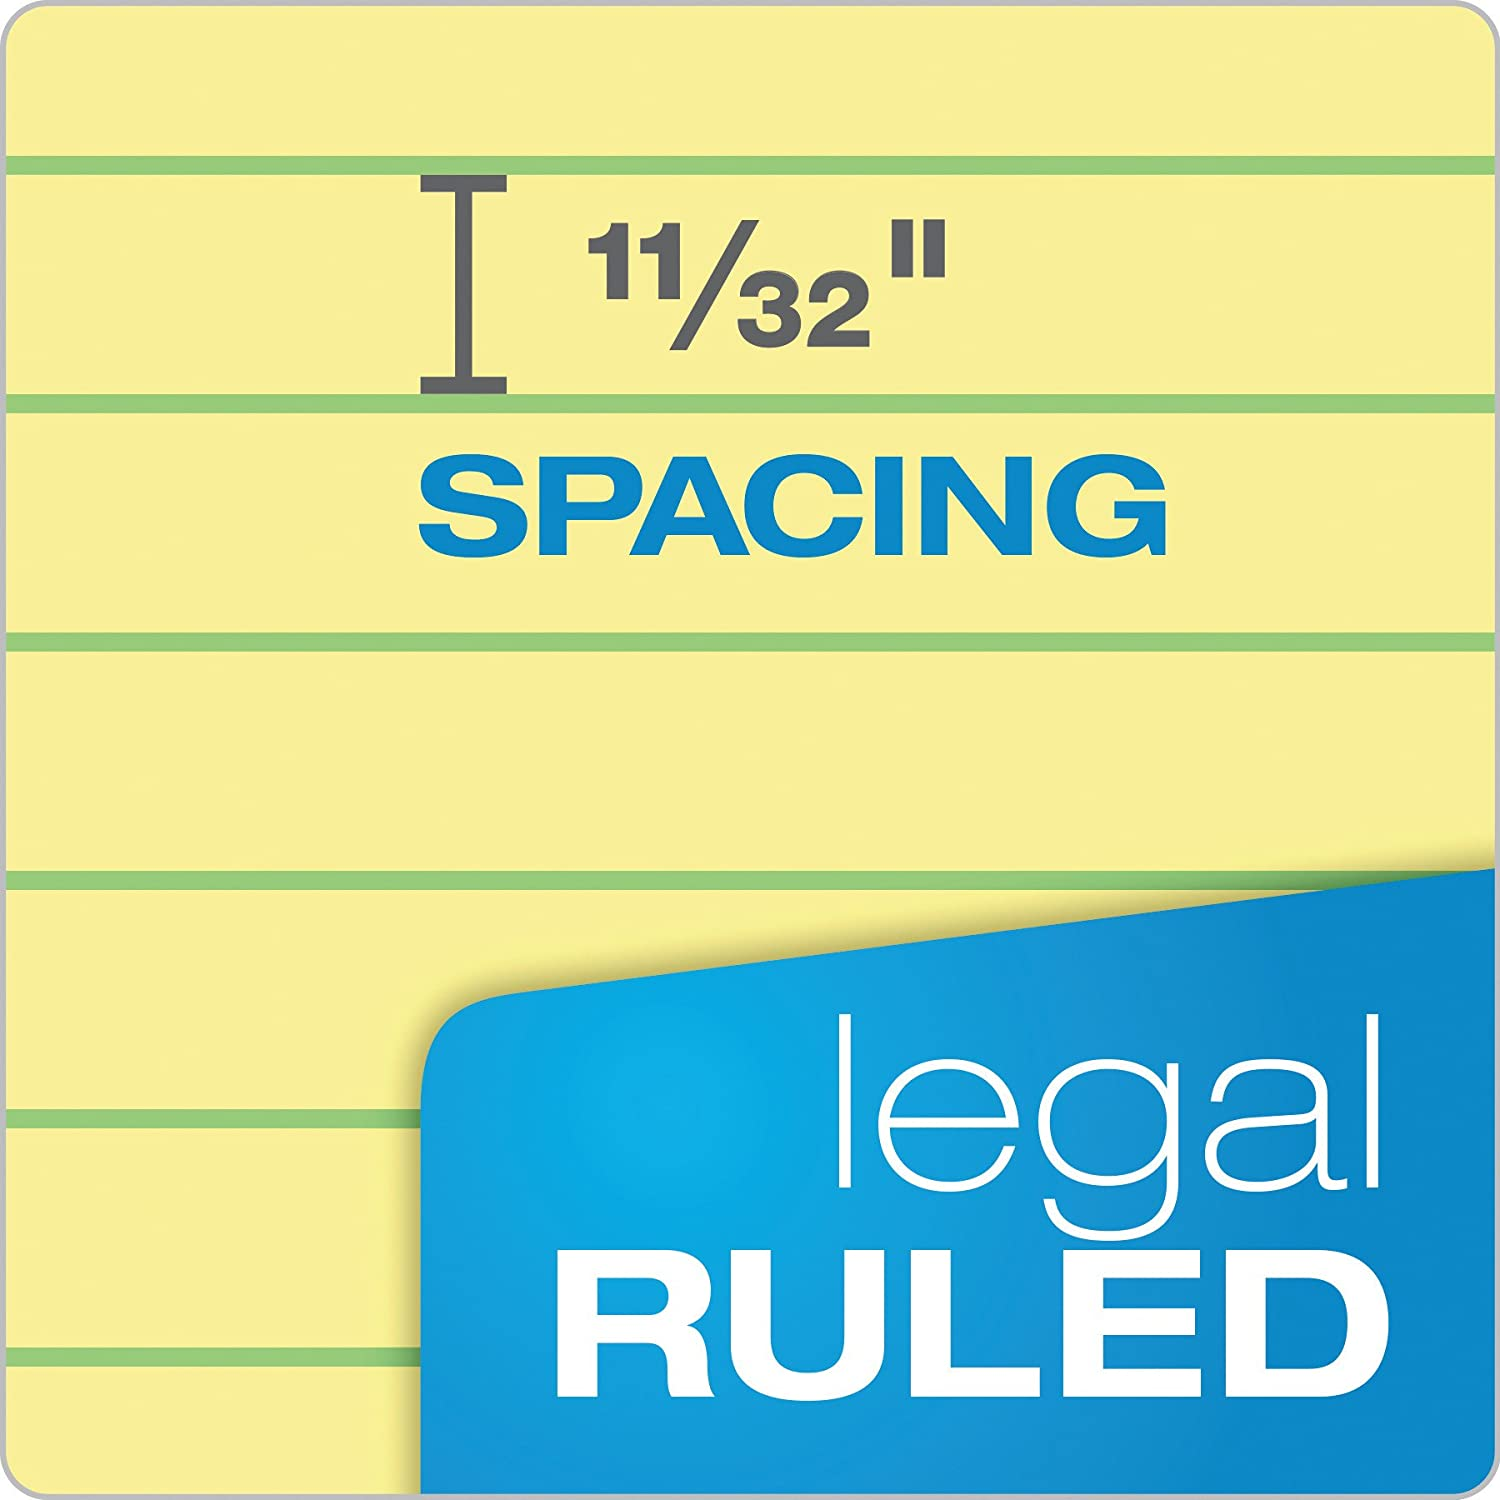 Canary Margin Perf 8-1//2x14 Legal Rule Pads 50 Shts Dozen Ampad 20-280 Evidence Recyc